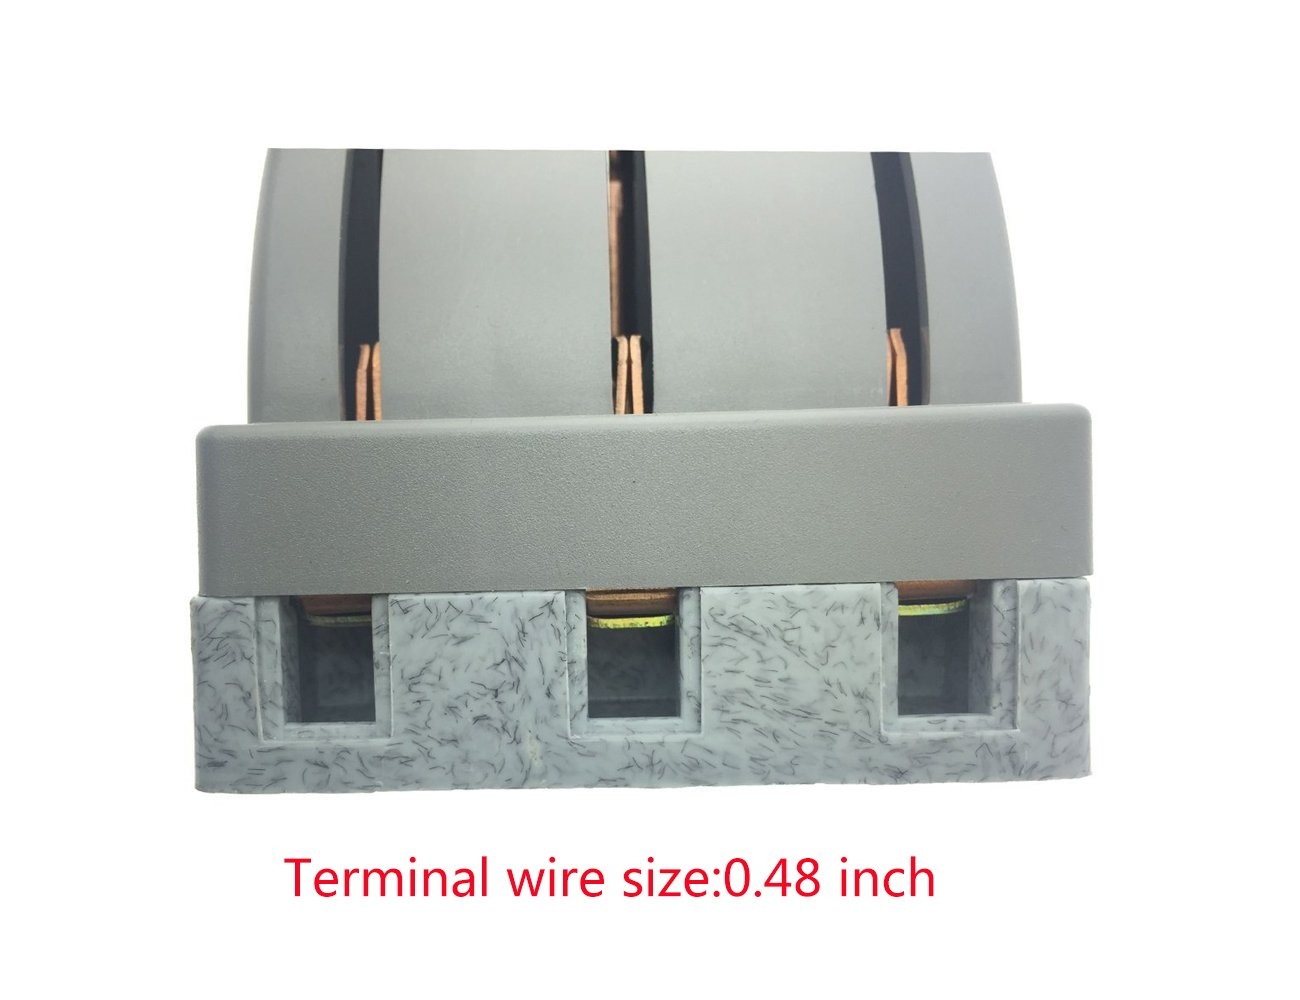 YXQ 380V 100A 3 Pole Double Throw Power Supply Safety Control Knife Switch Gray by YXQ (Image #5)